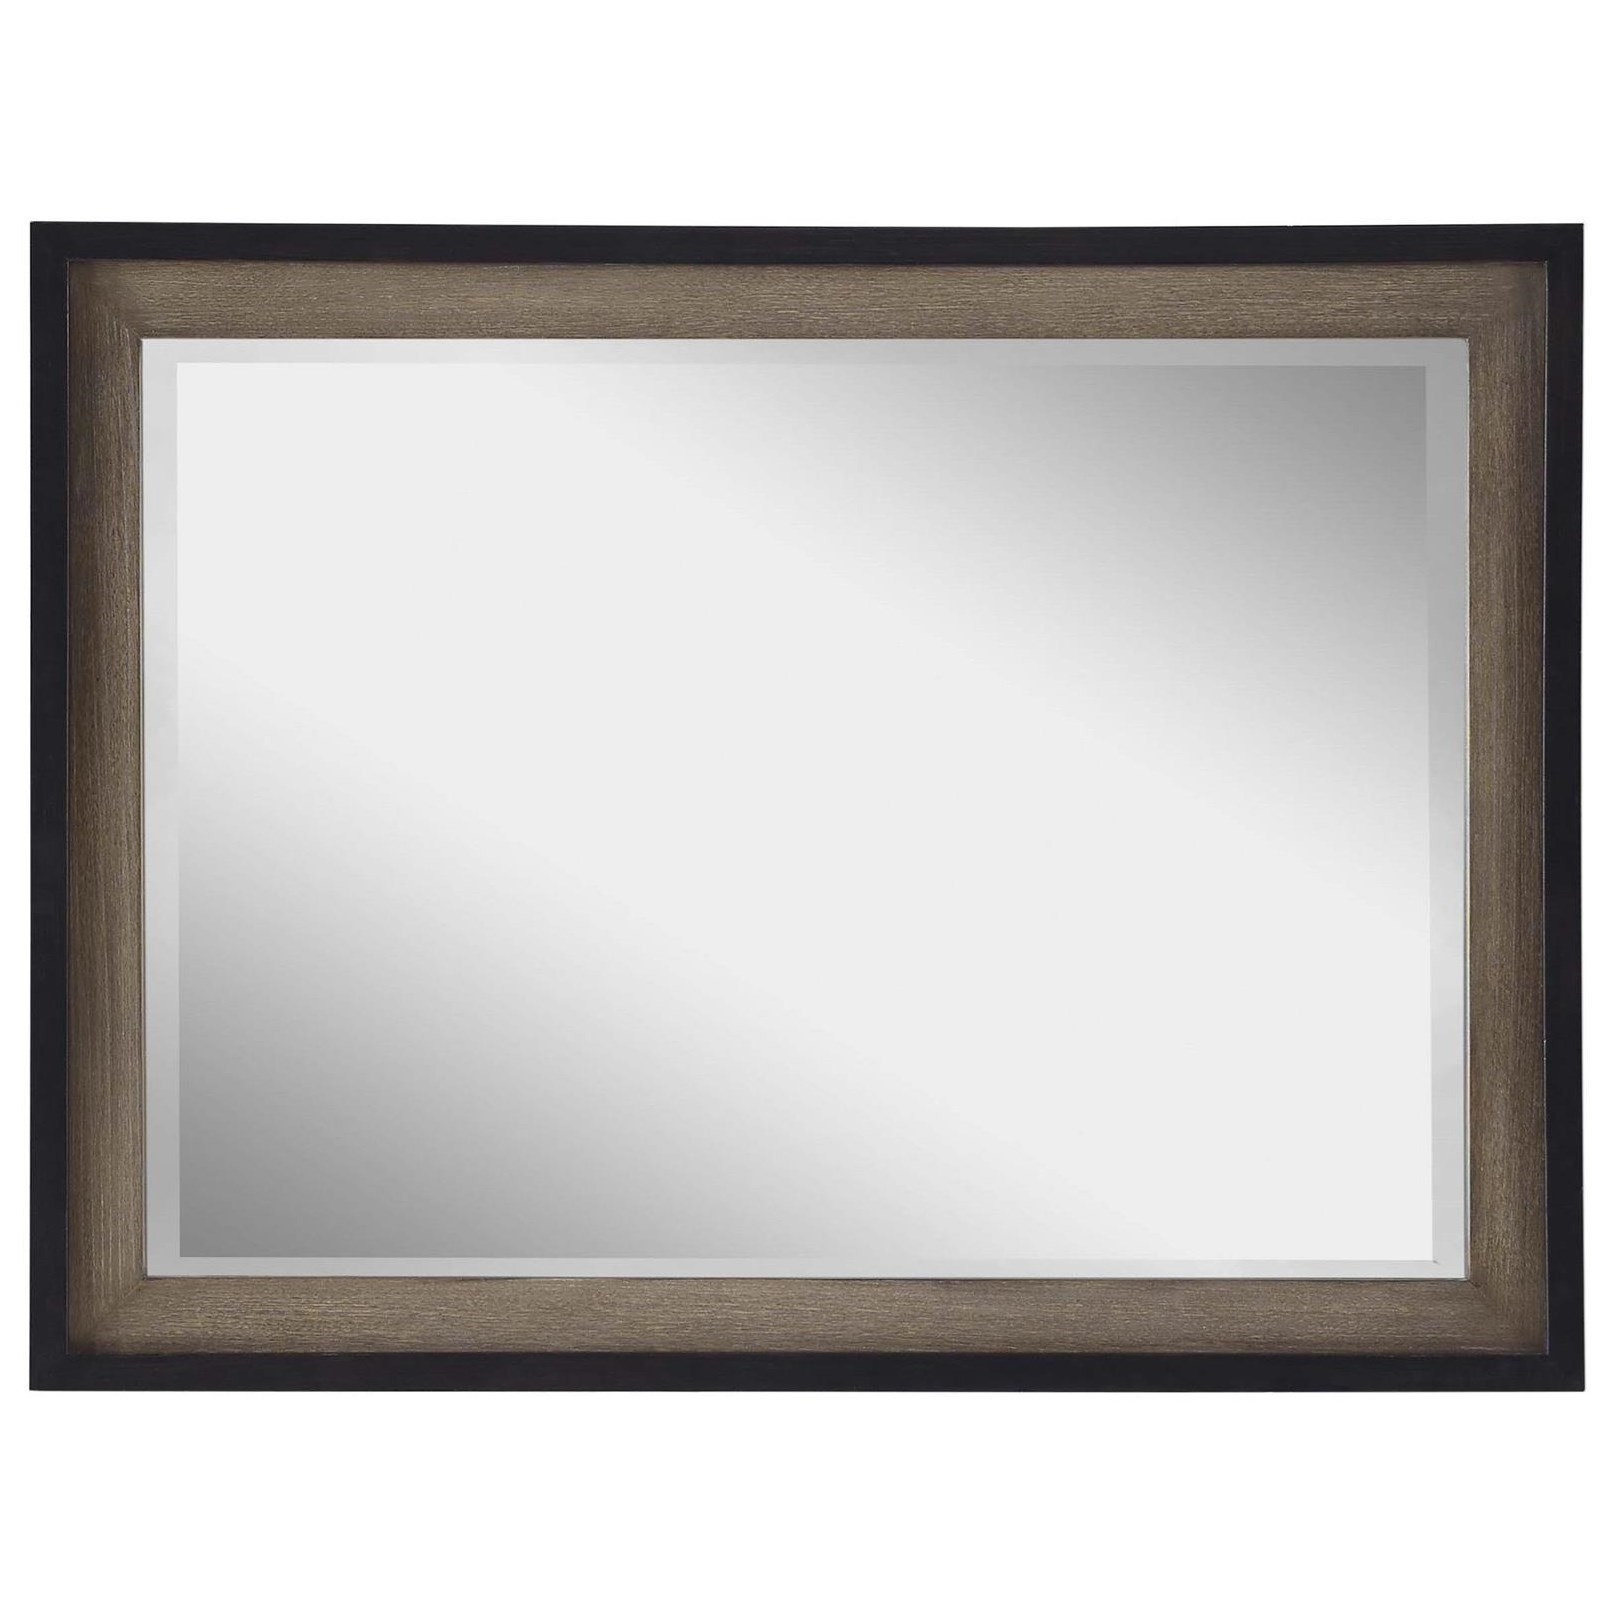 Torrance Mirror With Beveled Glass Morris Home Dresser